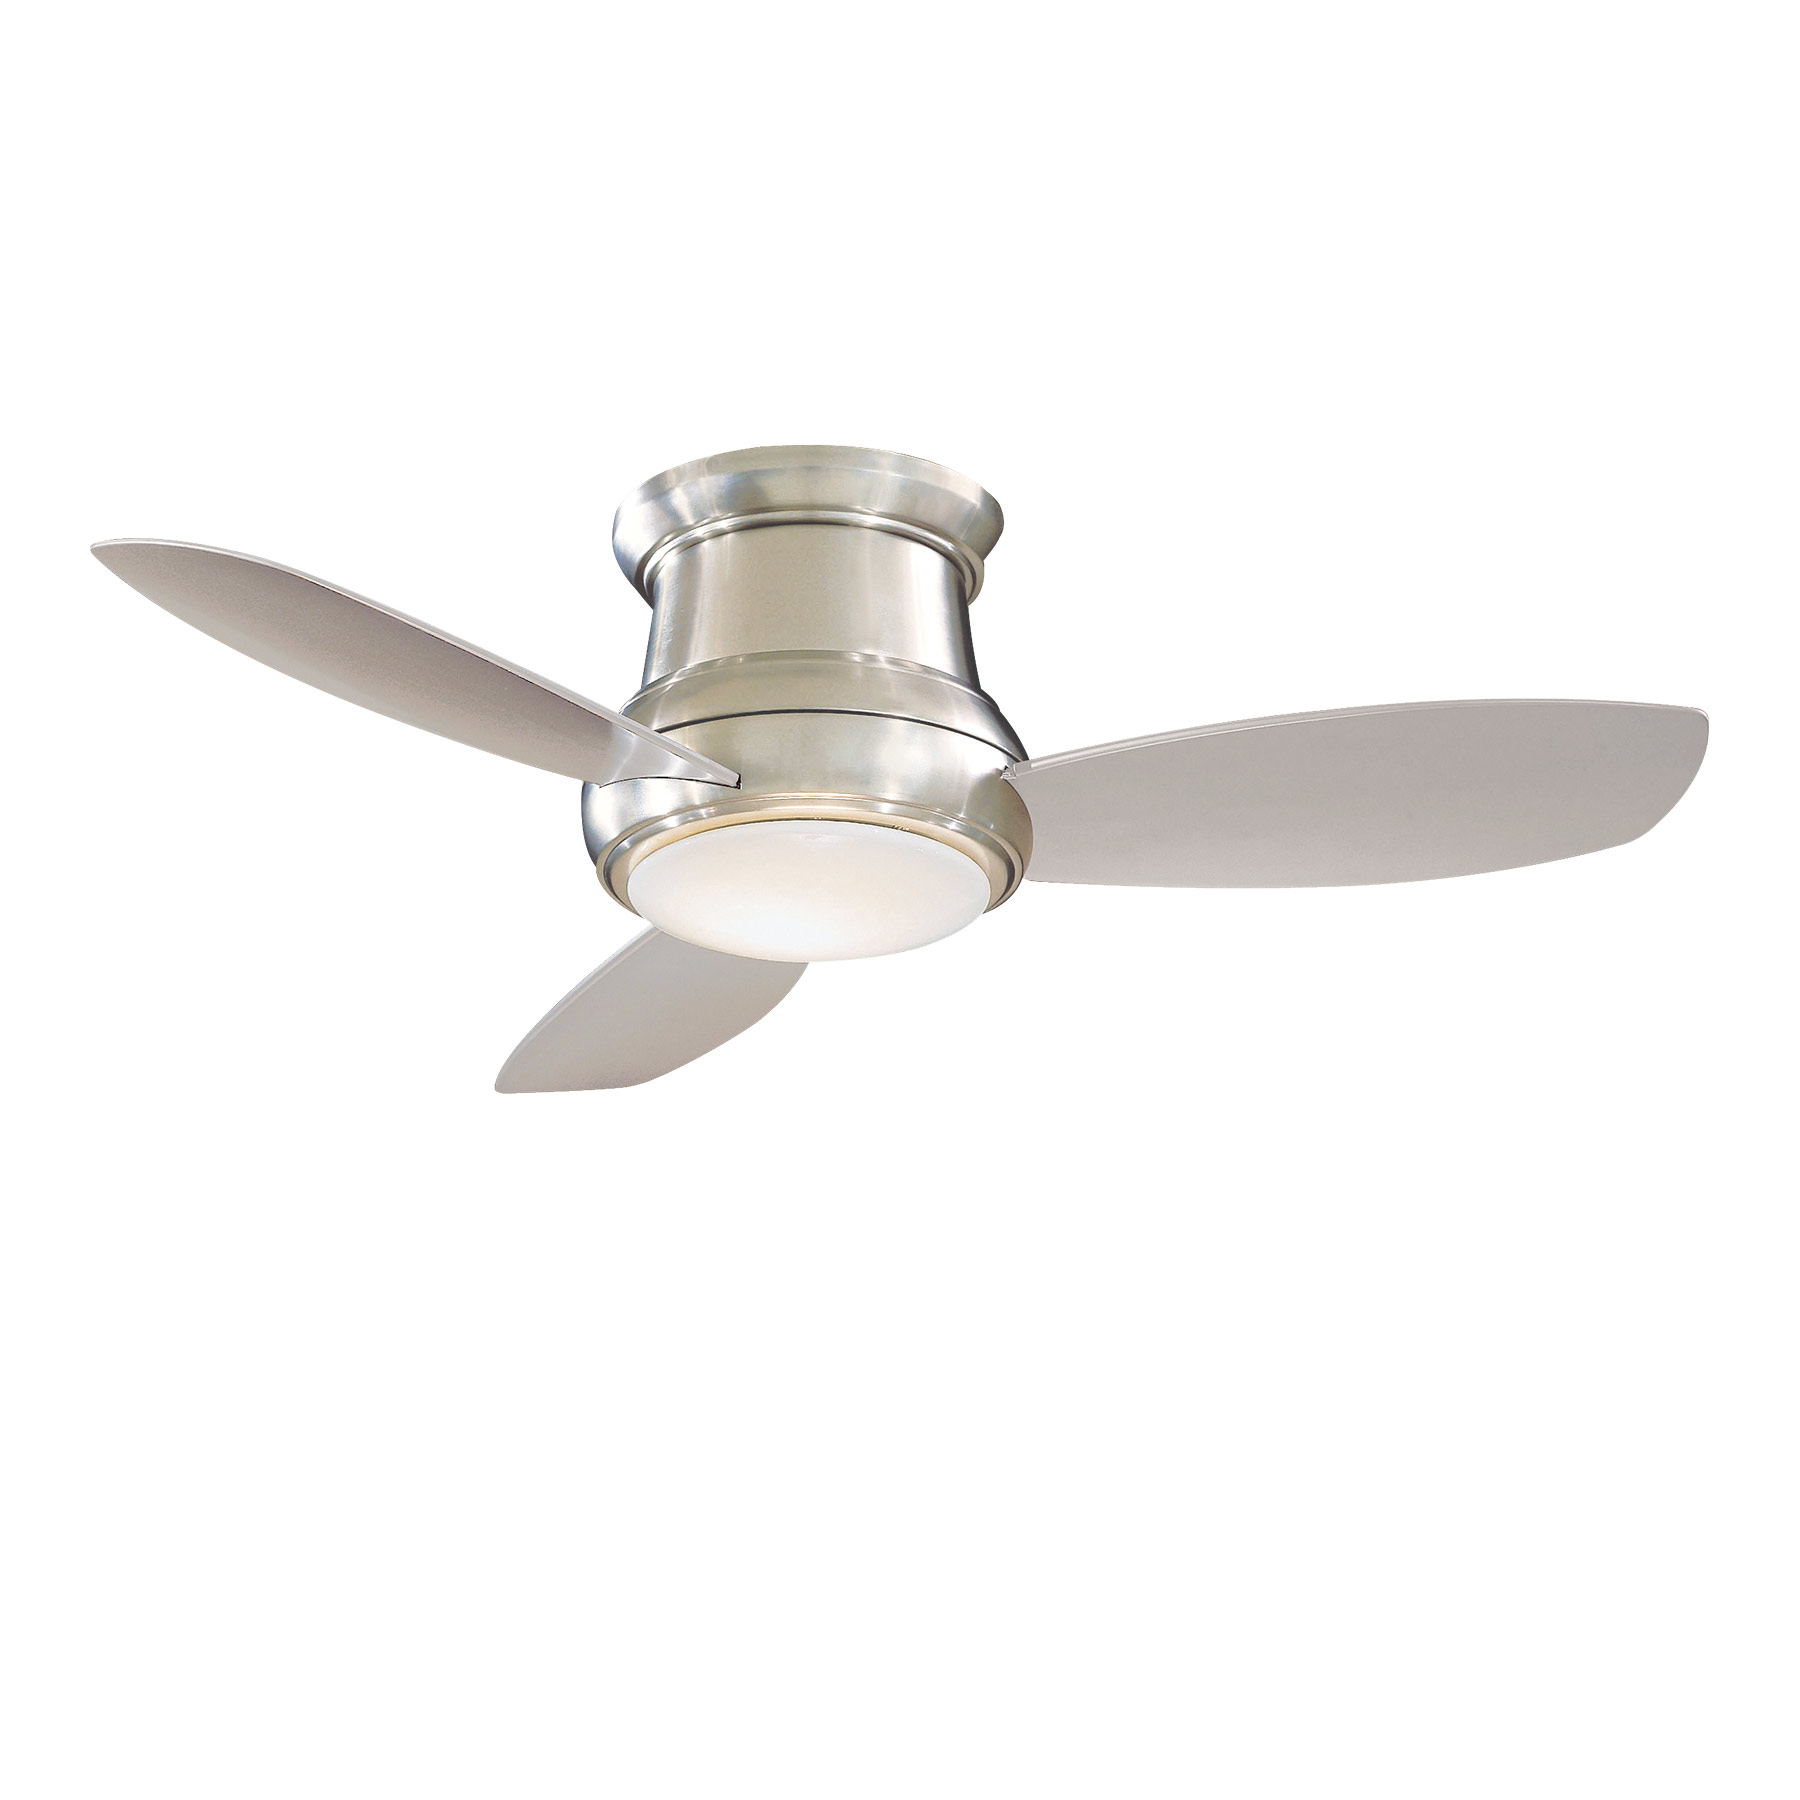 download image concept ii ceiling fan led by minka aire - Minka Aire Fans